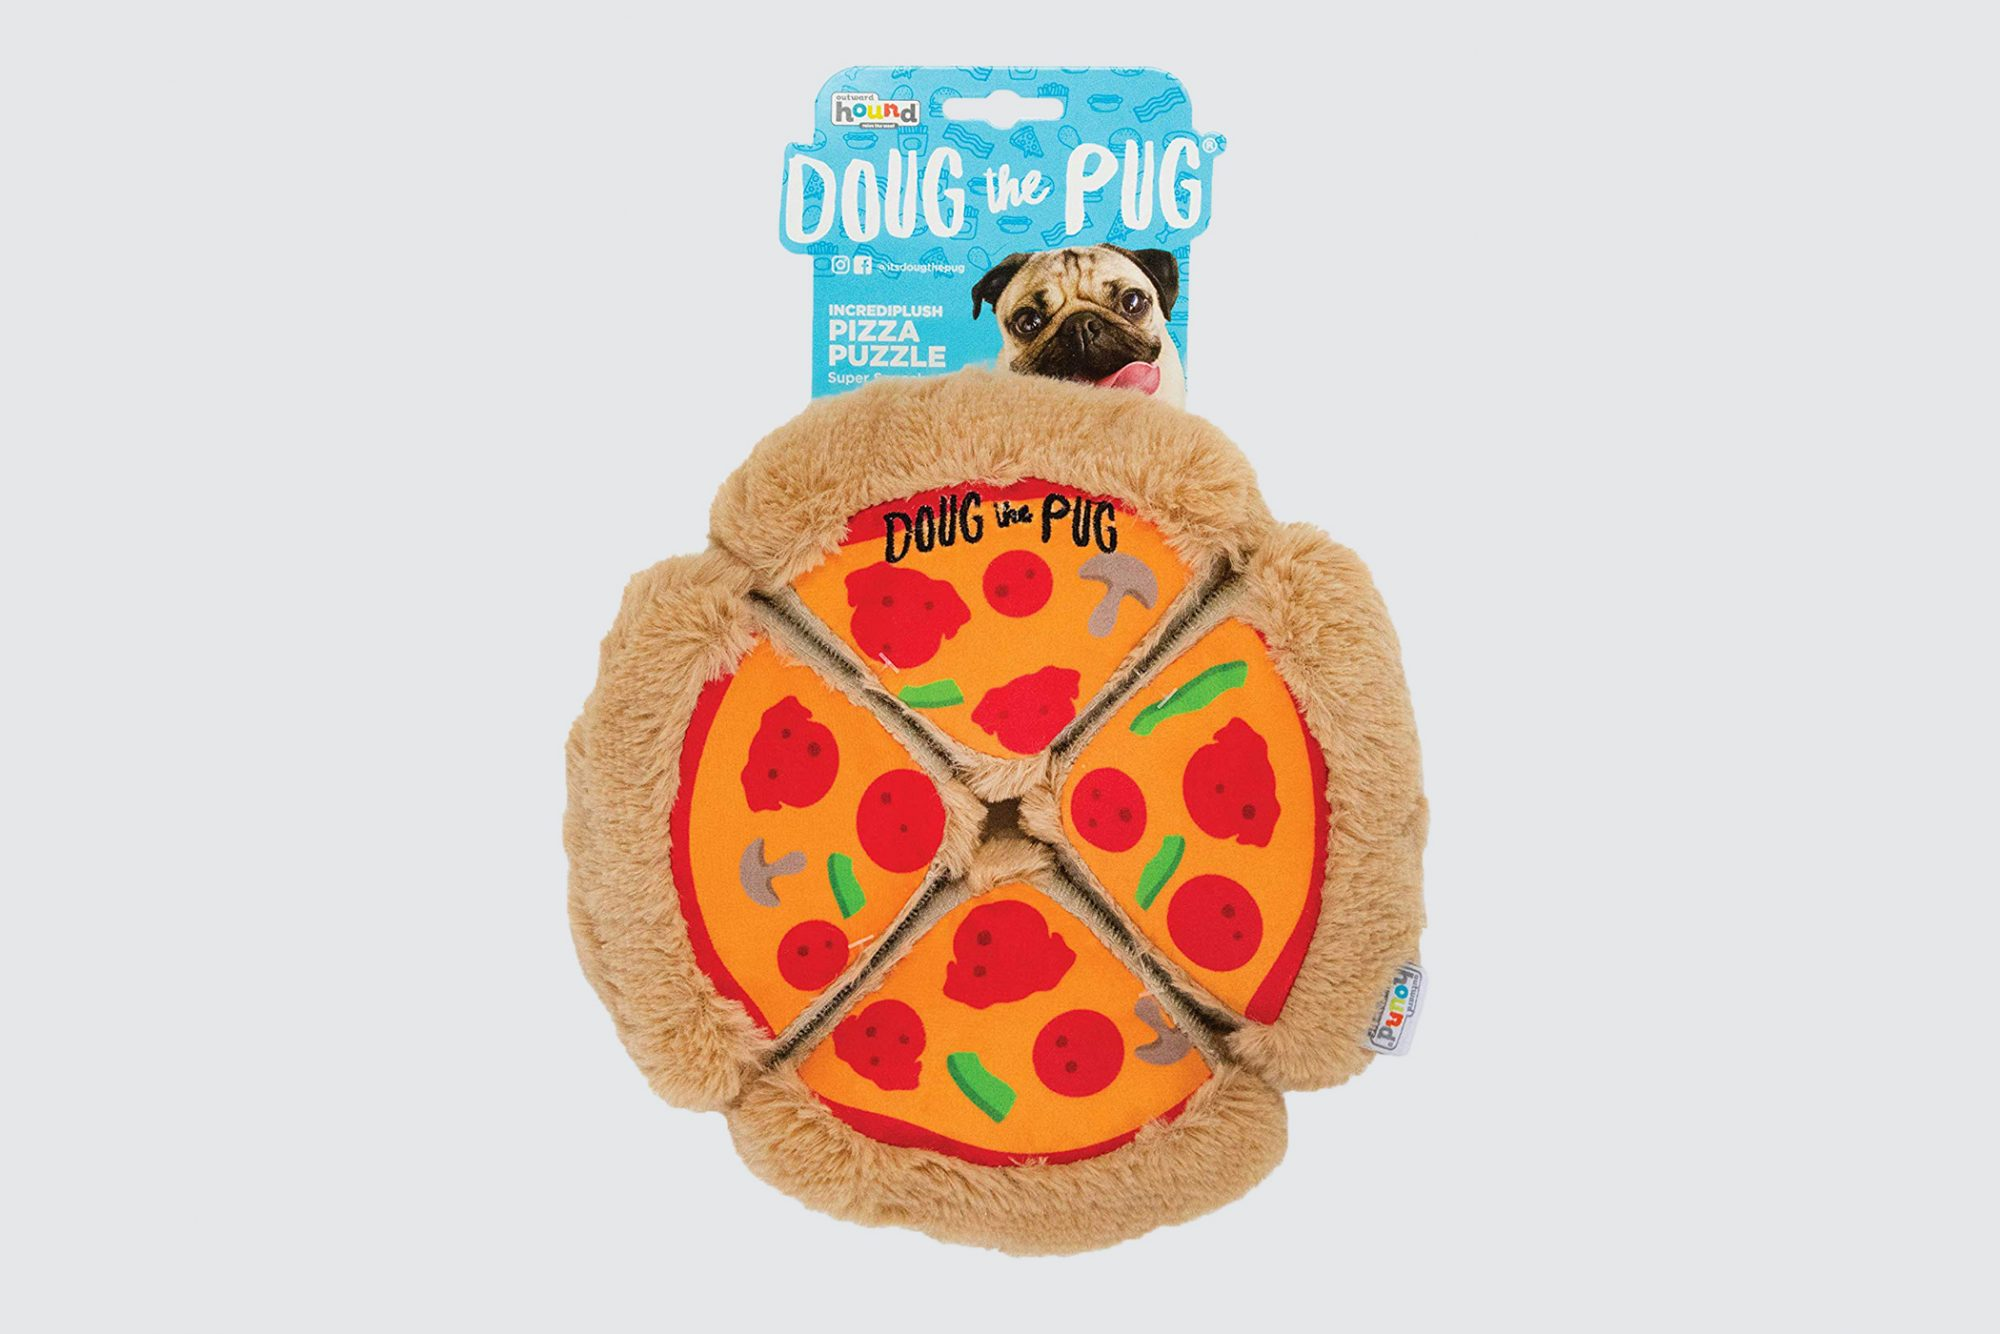 Outward Hound Doug the Pug Incrediplush Pizza Puzzle Squeaky Plush Dog Toy